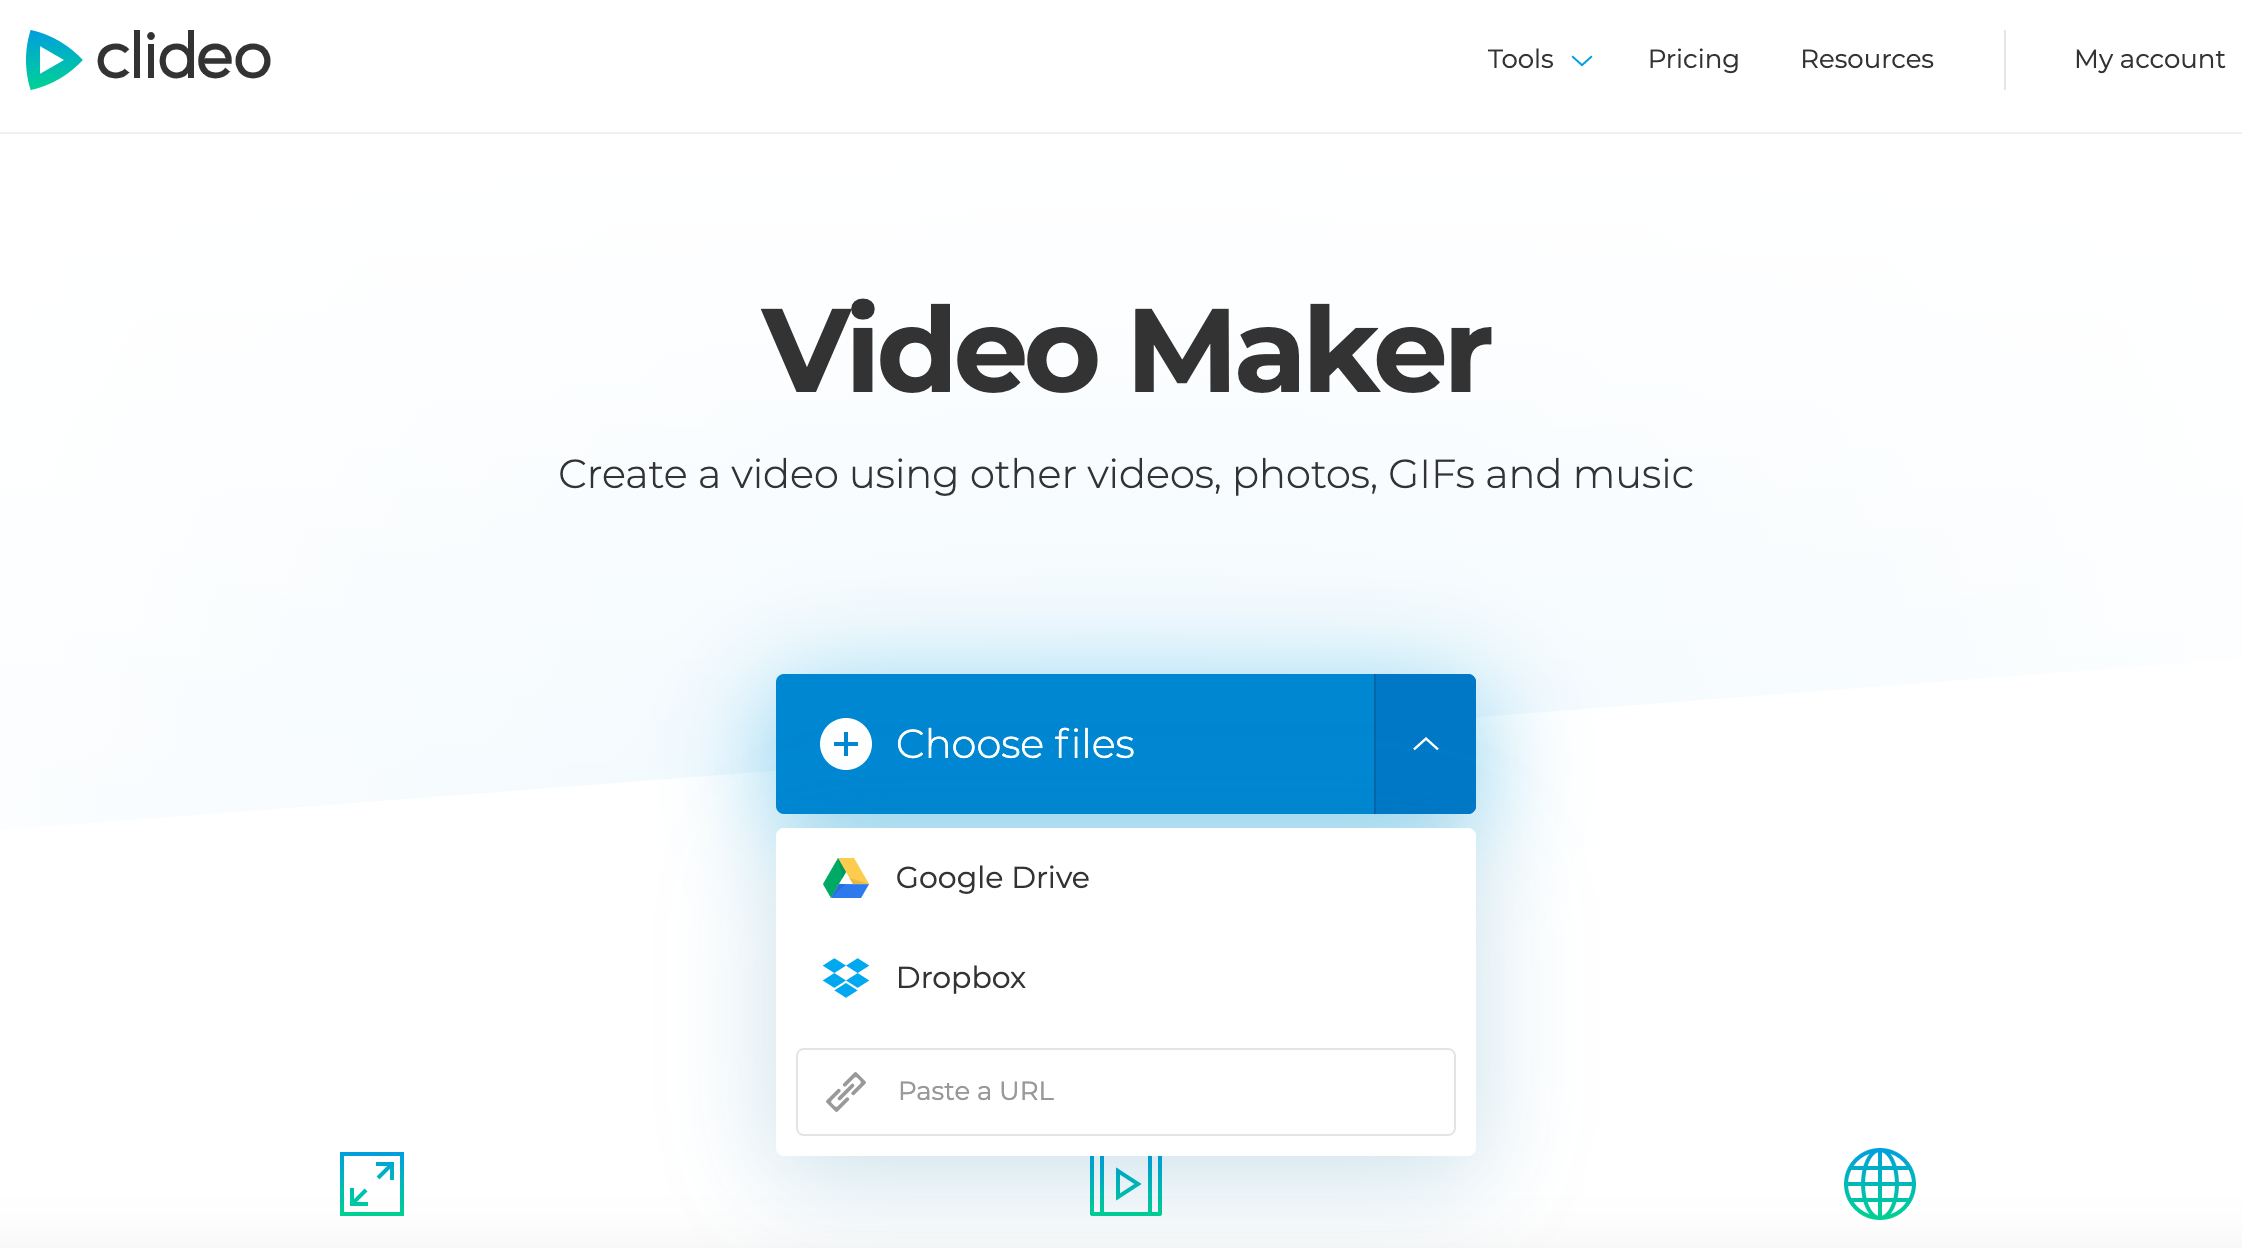 Choose files to create a Facebook video